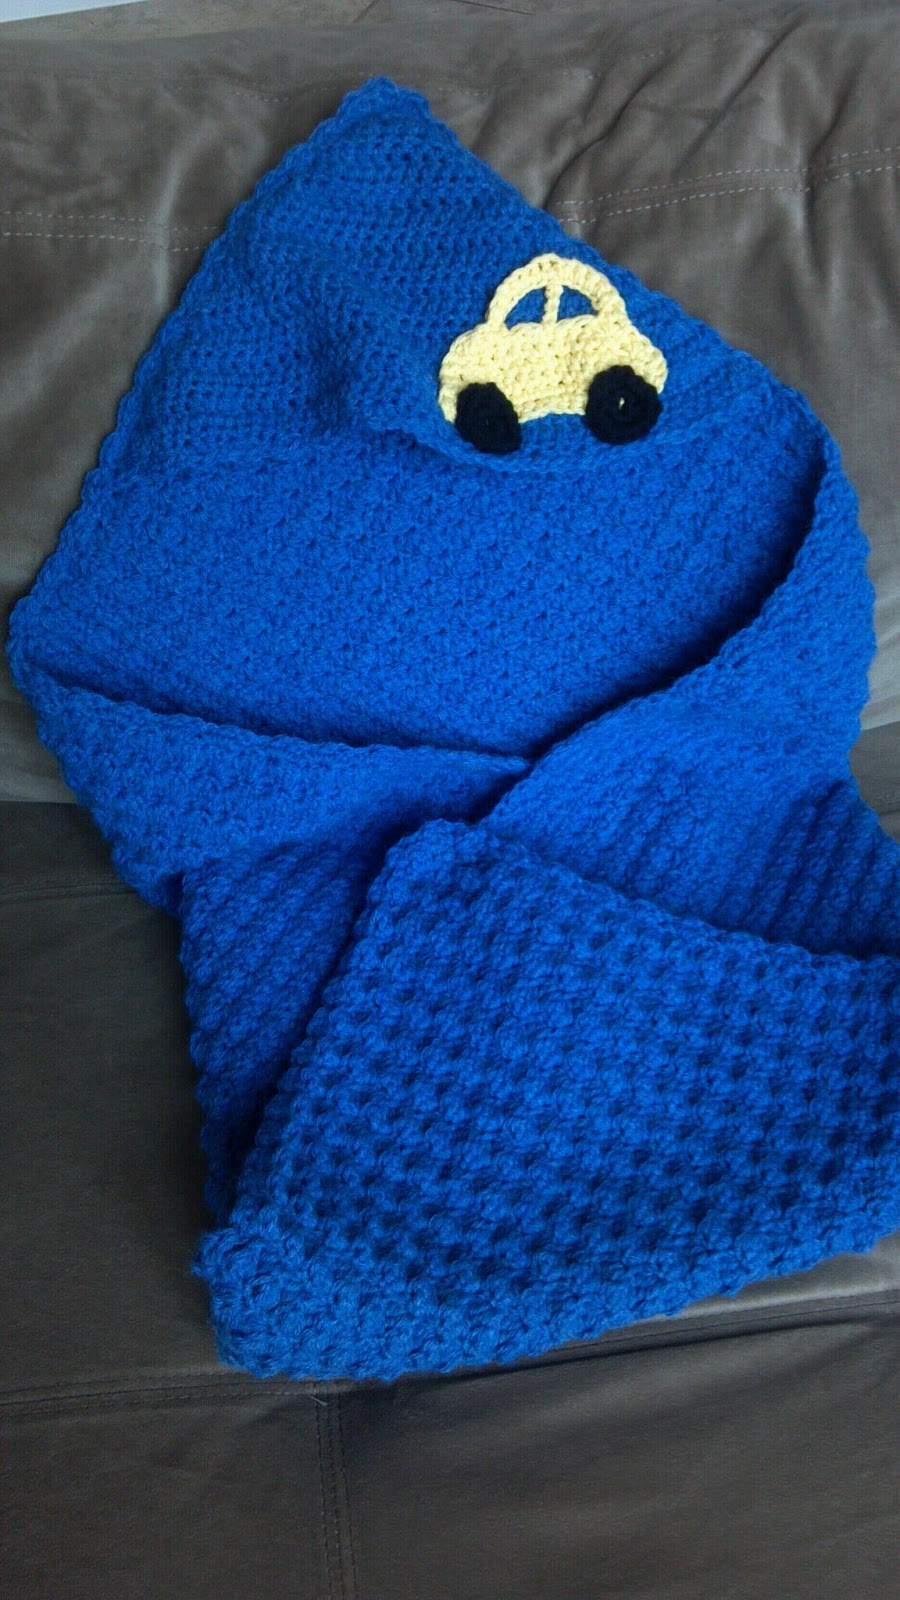 Crochet Pattern For Baby Blanket With Hood : Sincerely, Ree: Hooded Baby Blanket-Crochet